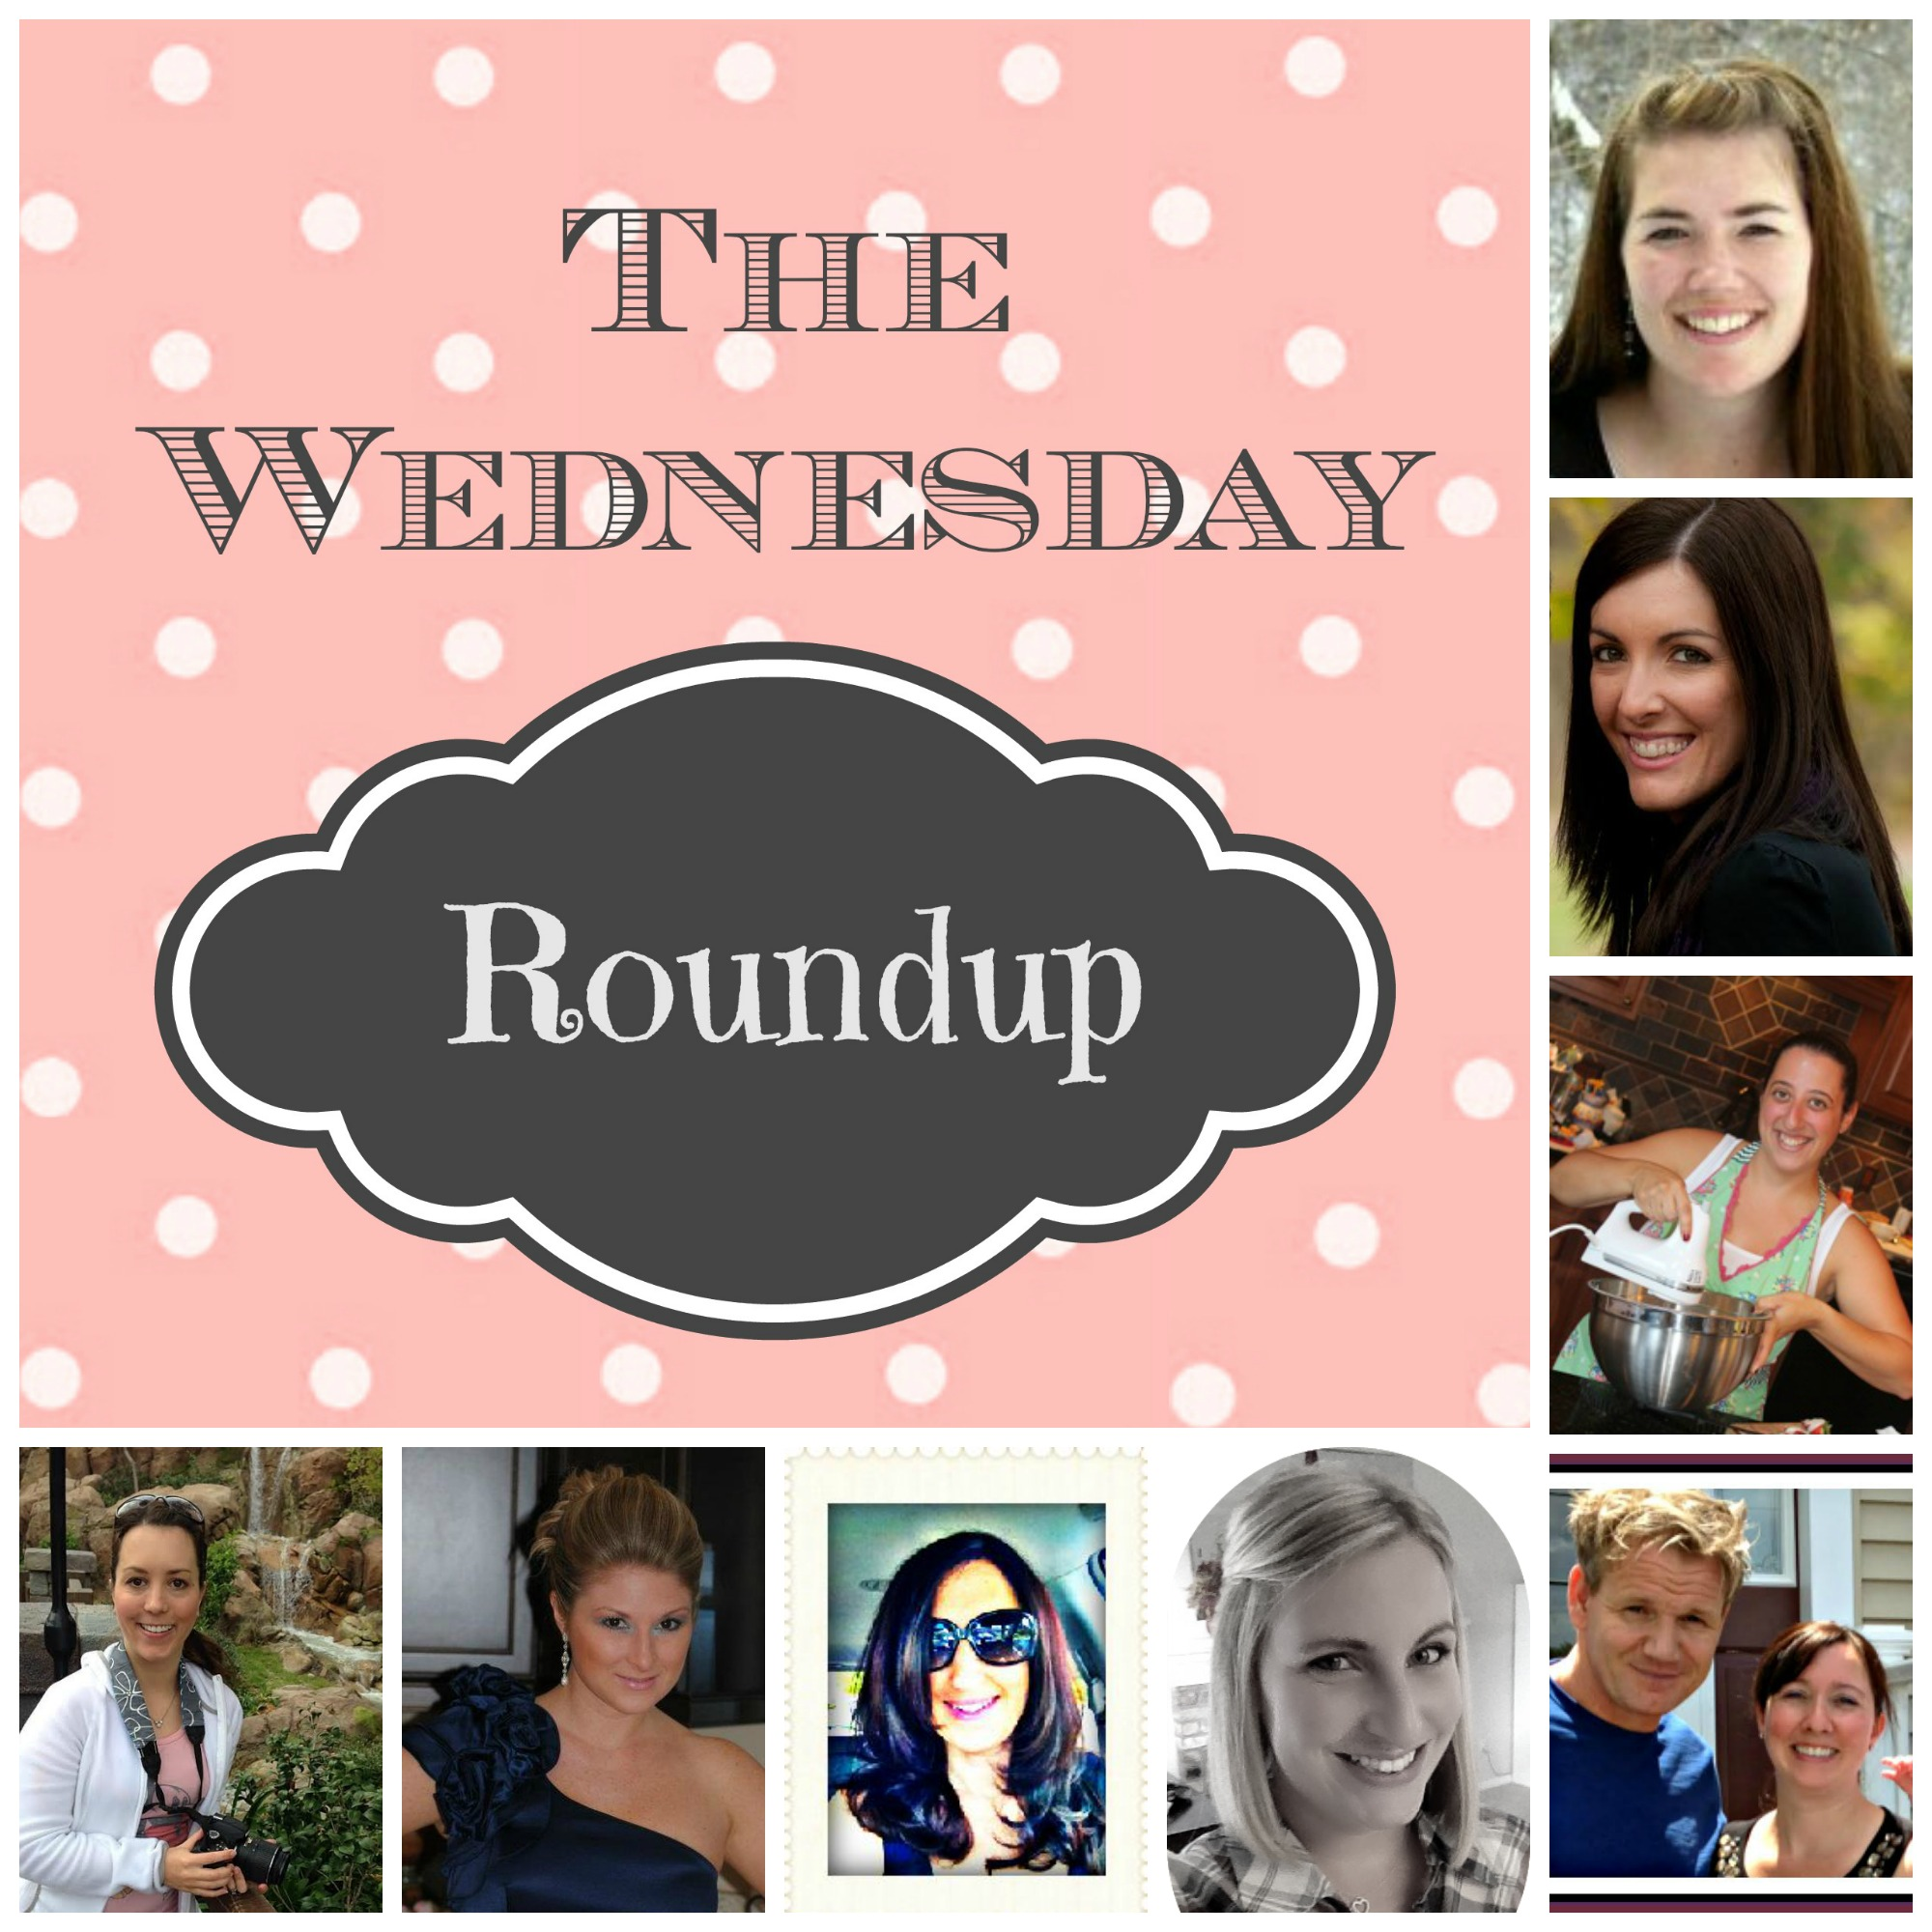 The Wednesday Roundup Week 47 :: A Link Party